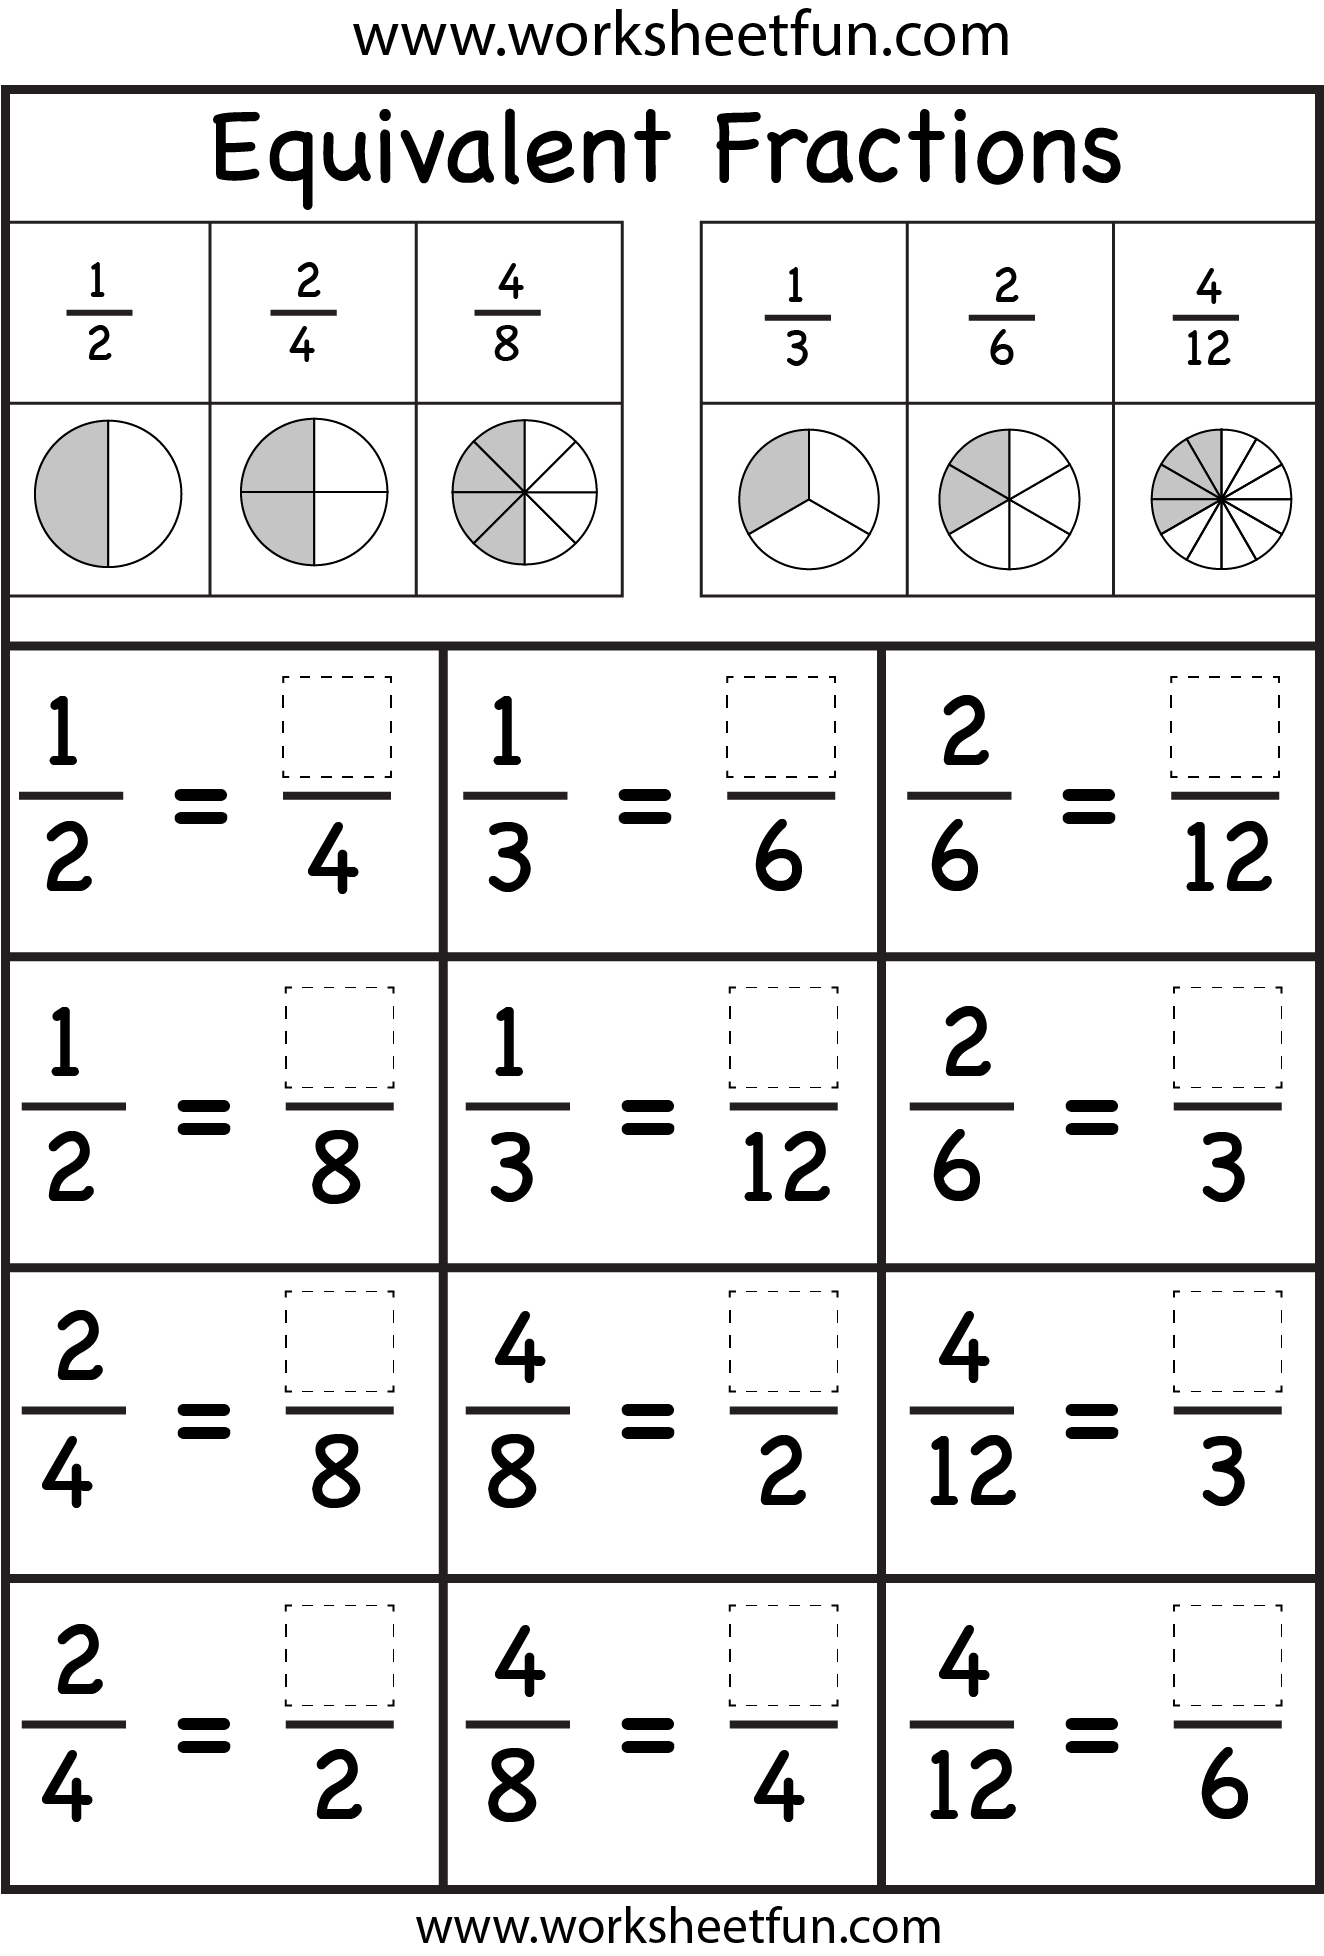 worksheet Basic Fractions Worksheet equivalent fractions fraction worksheets pinterest are equal to each other two if they